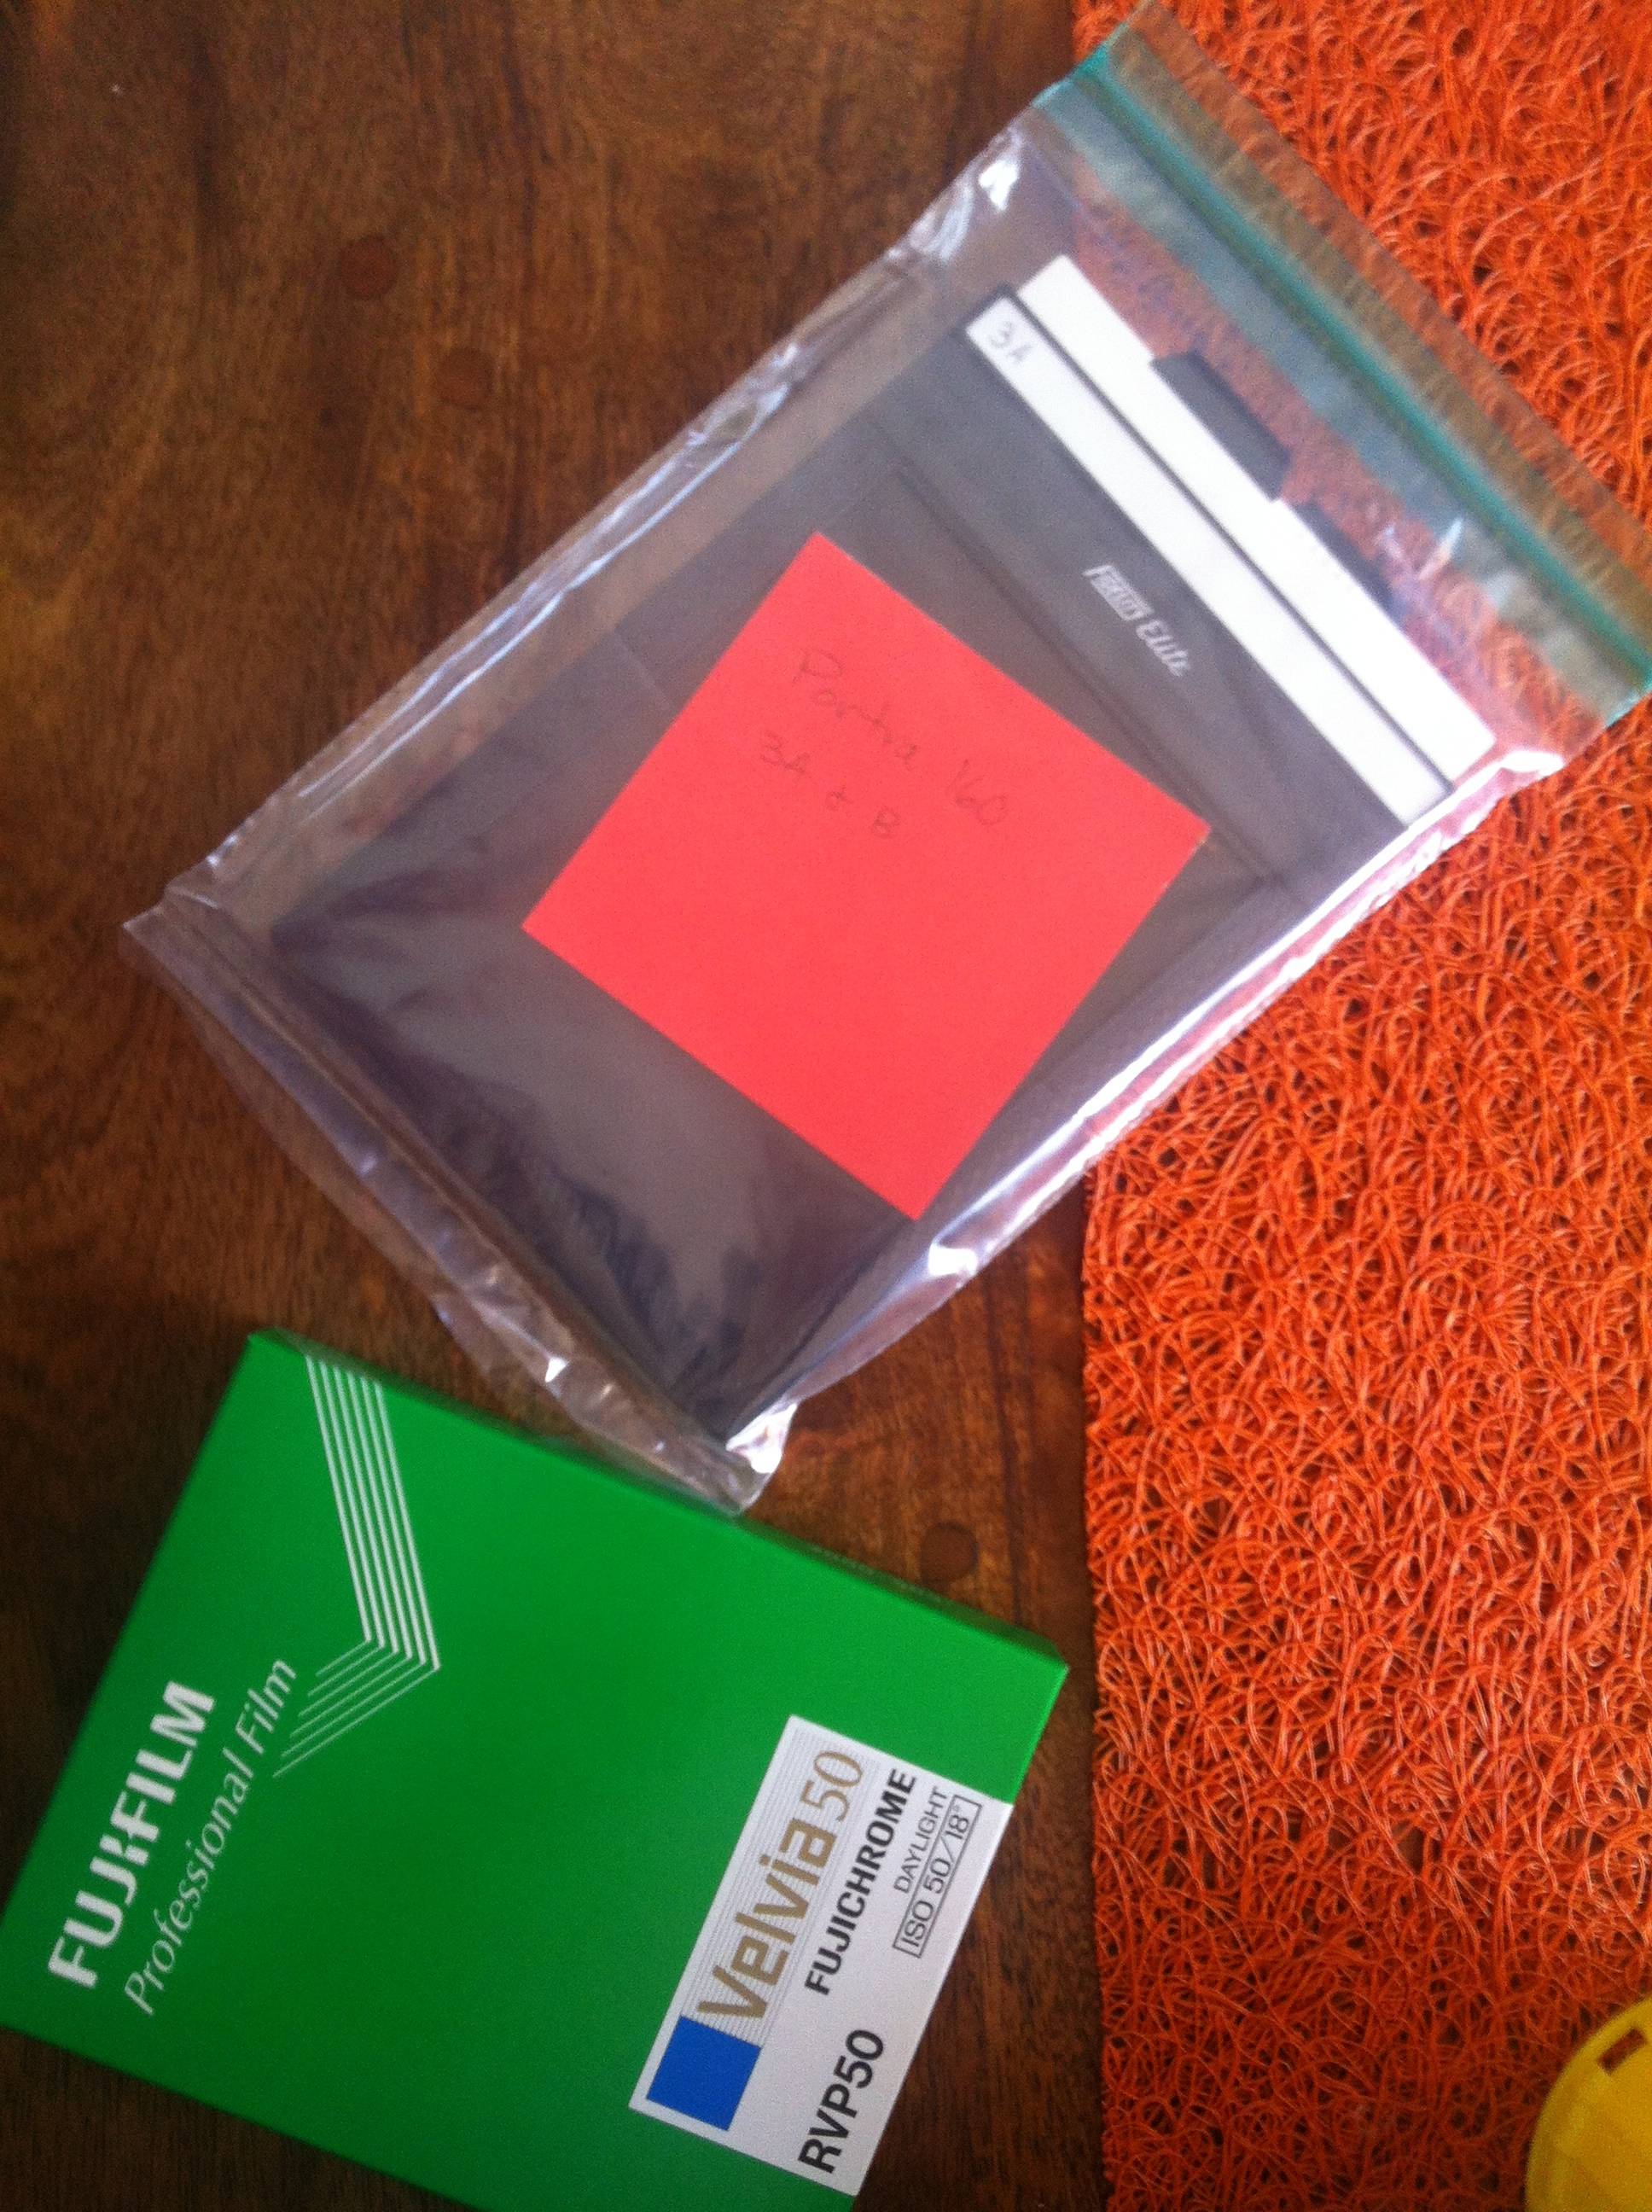 The special ziploc has a pocket which is used to place the identification note. It does not touch the film holder